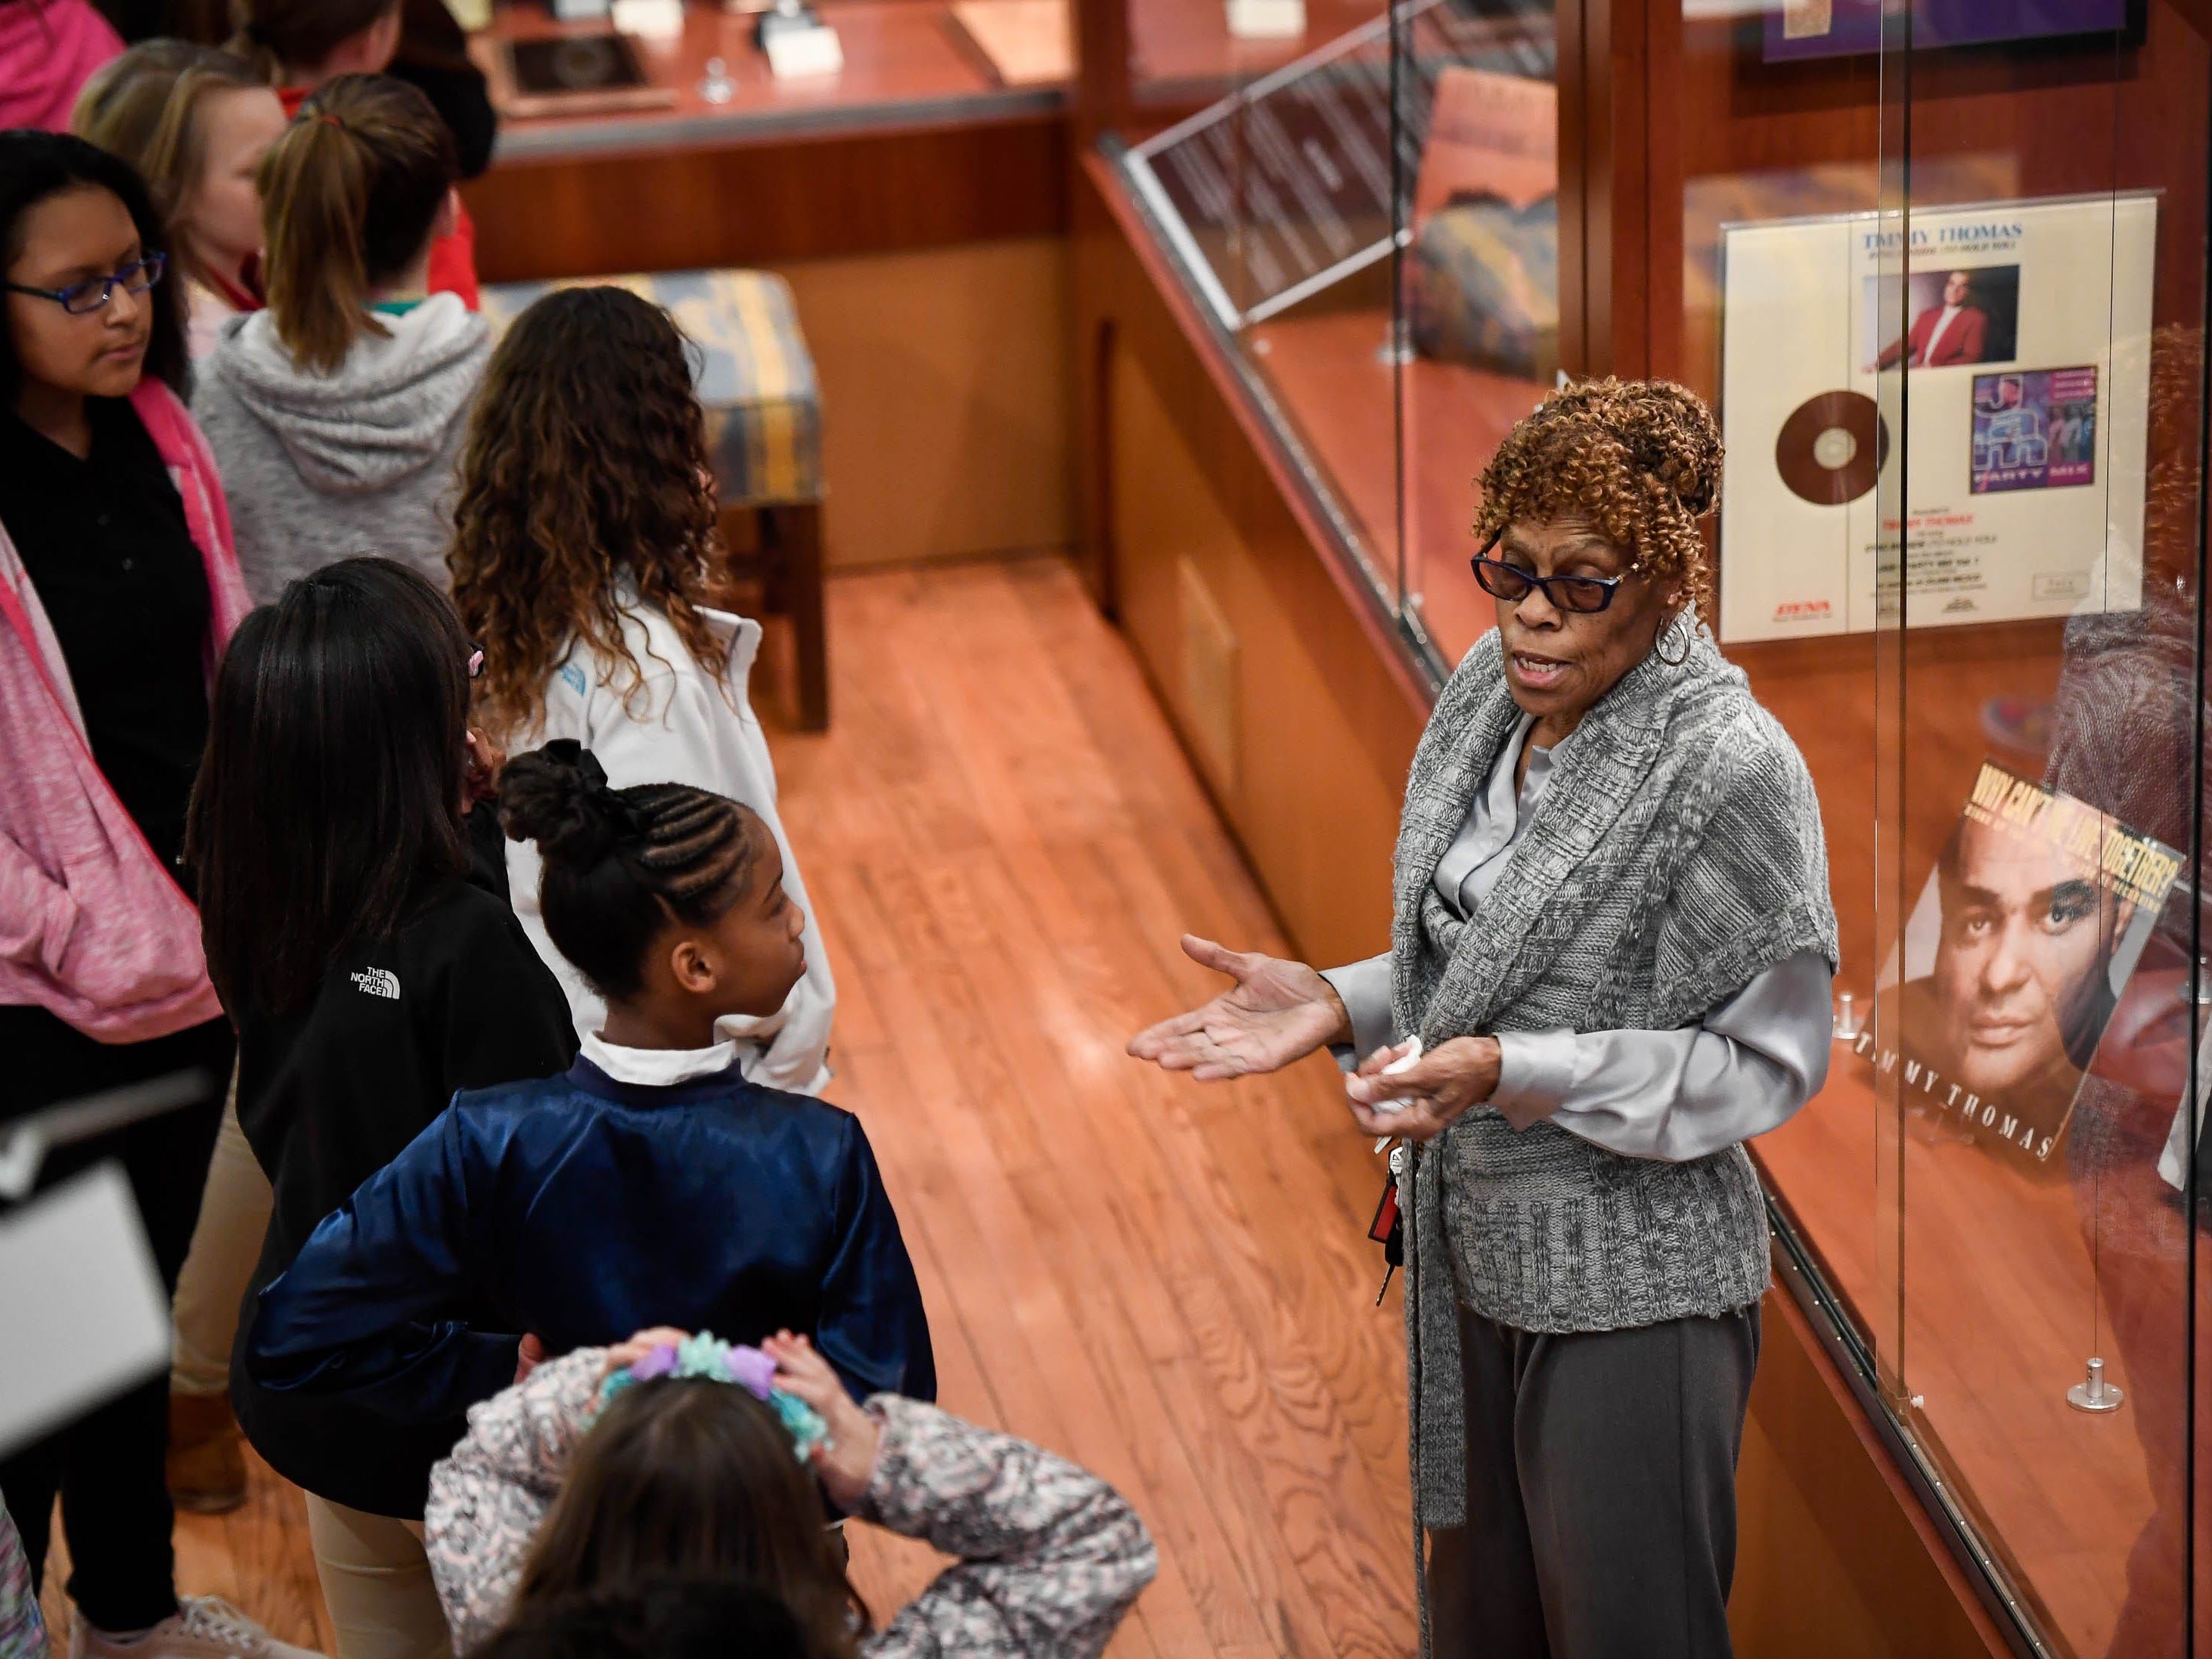 Museum worker Janice Hale leads a group of Dexter Elementary fifth graders on a tour of the Evansville African American Museum on Friday, February 15, 2019.